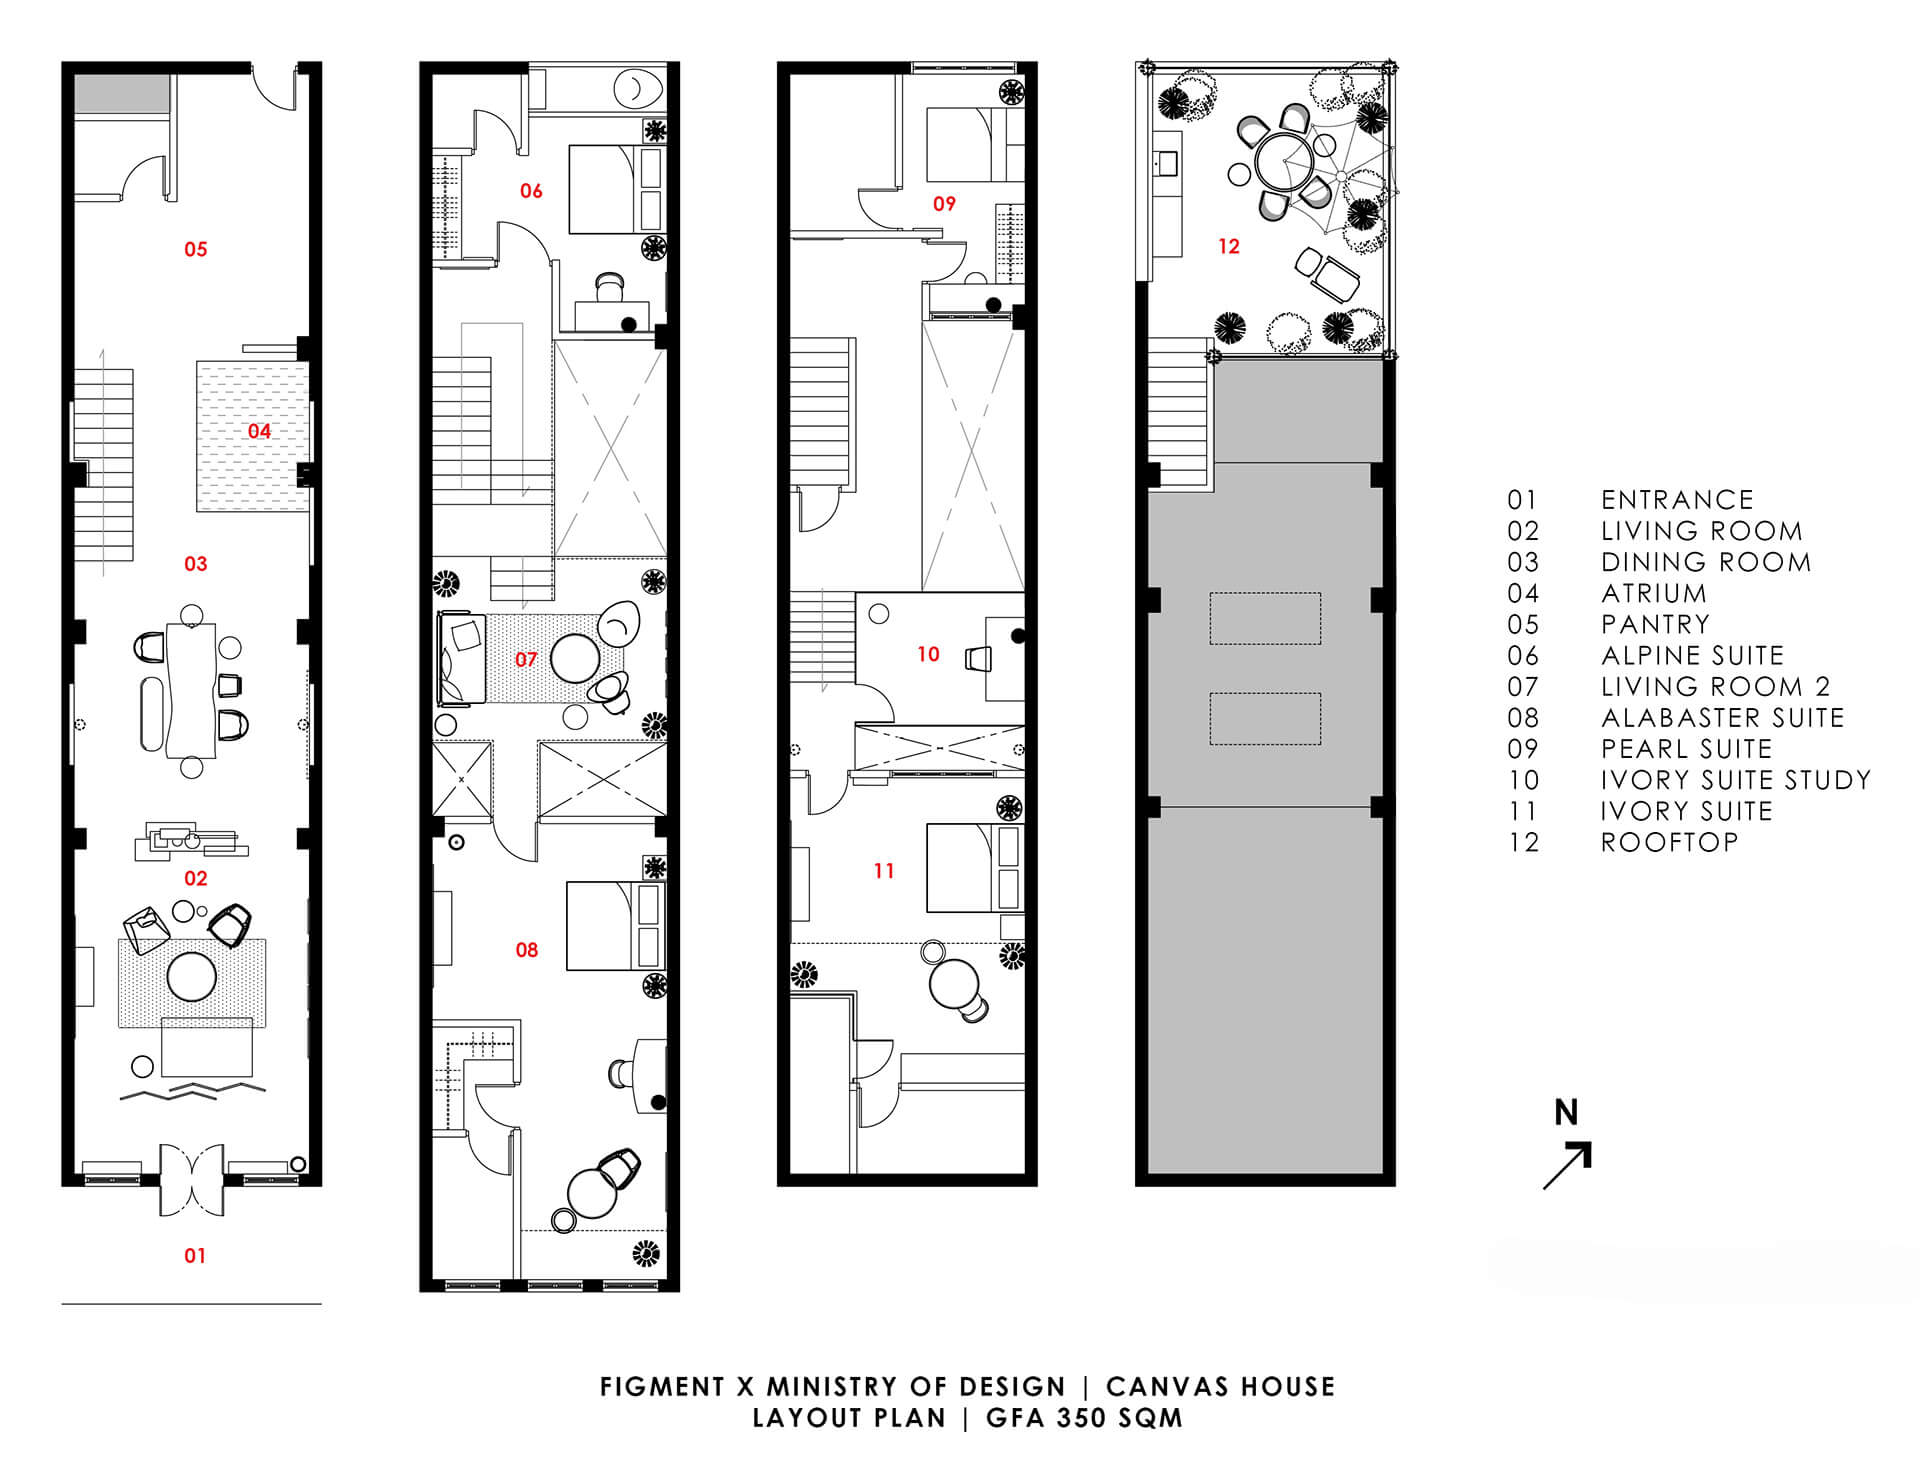 The Canvas House – Concept and Plan | Canvas House in Singapore by Ministry of Design | STIRworld